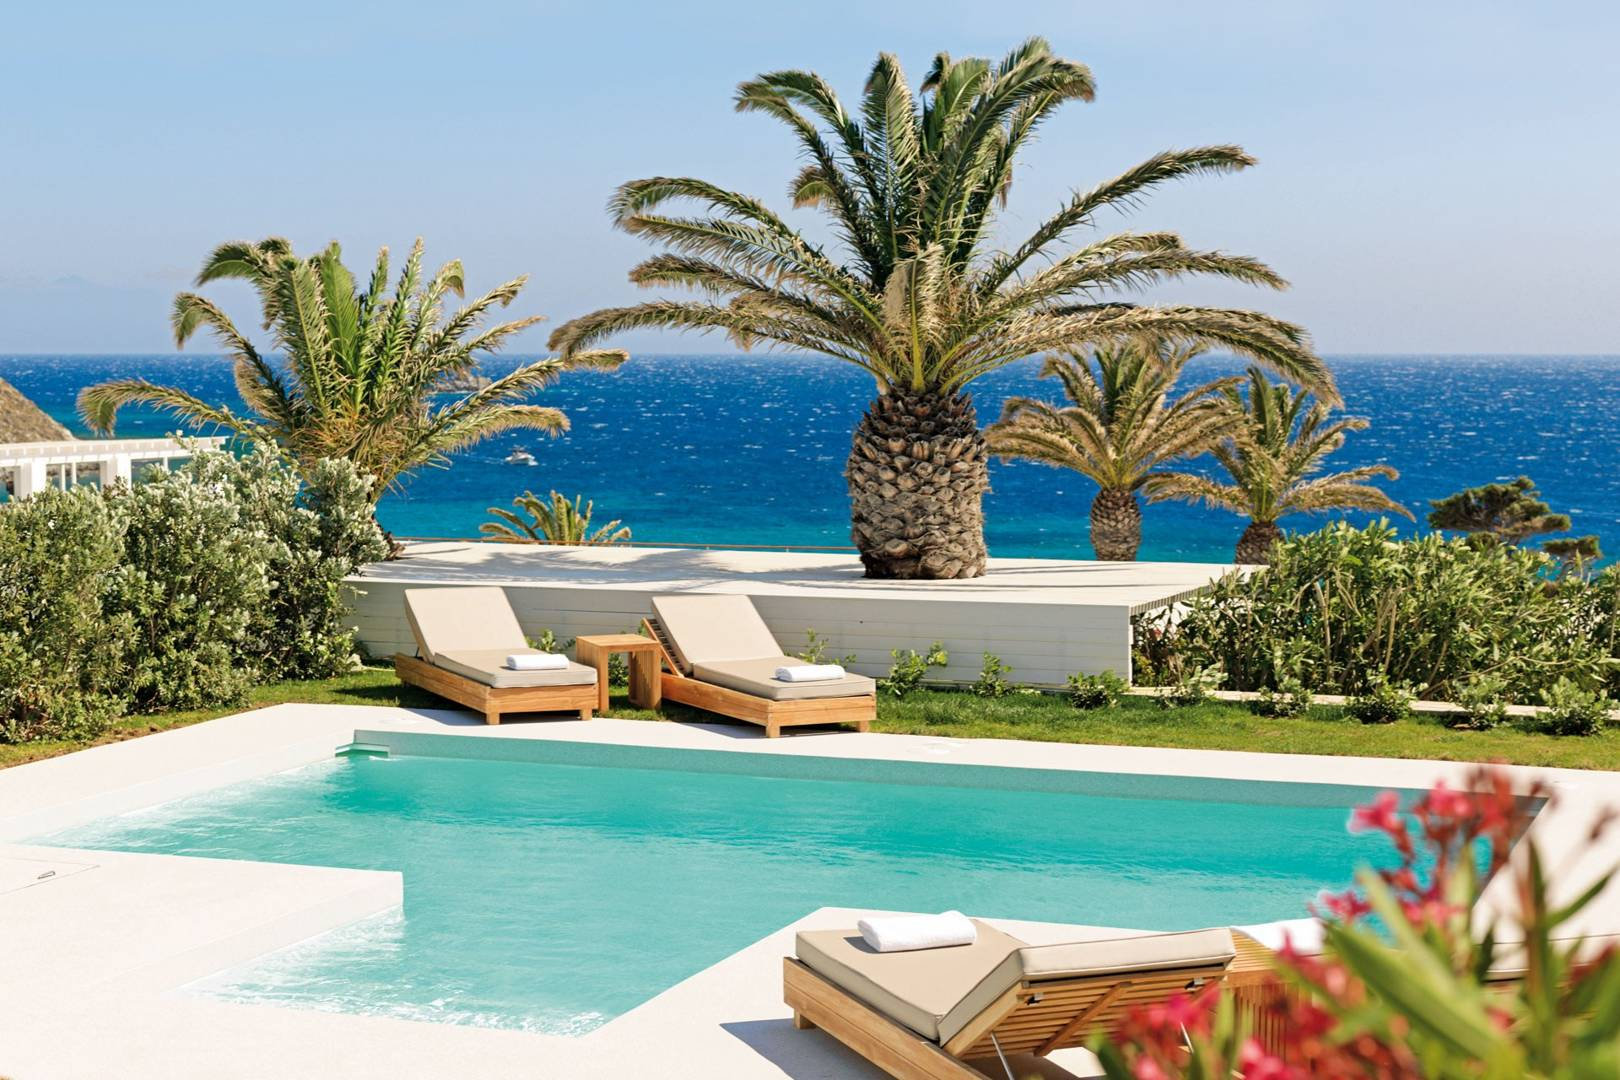 6 of the best family hotels in Greece